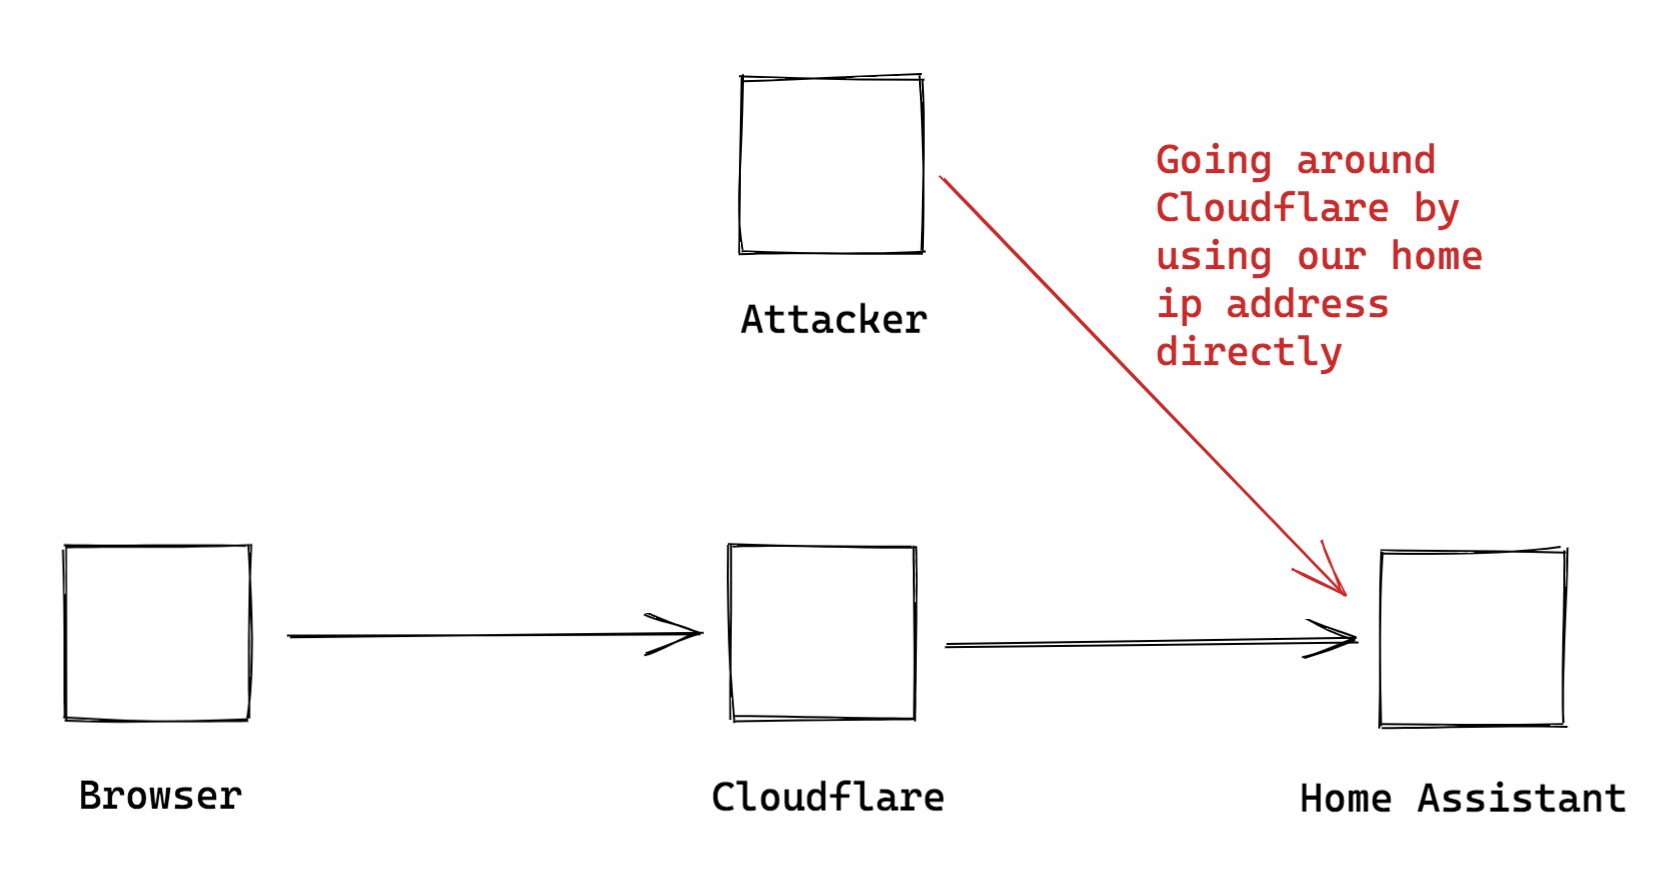 Attacker avoiding Cloudflare